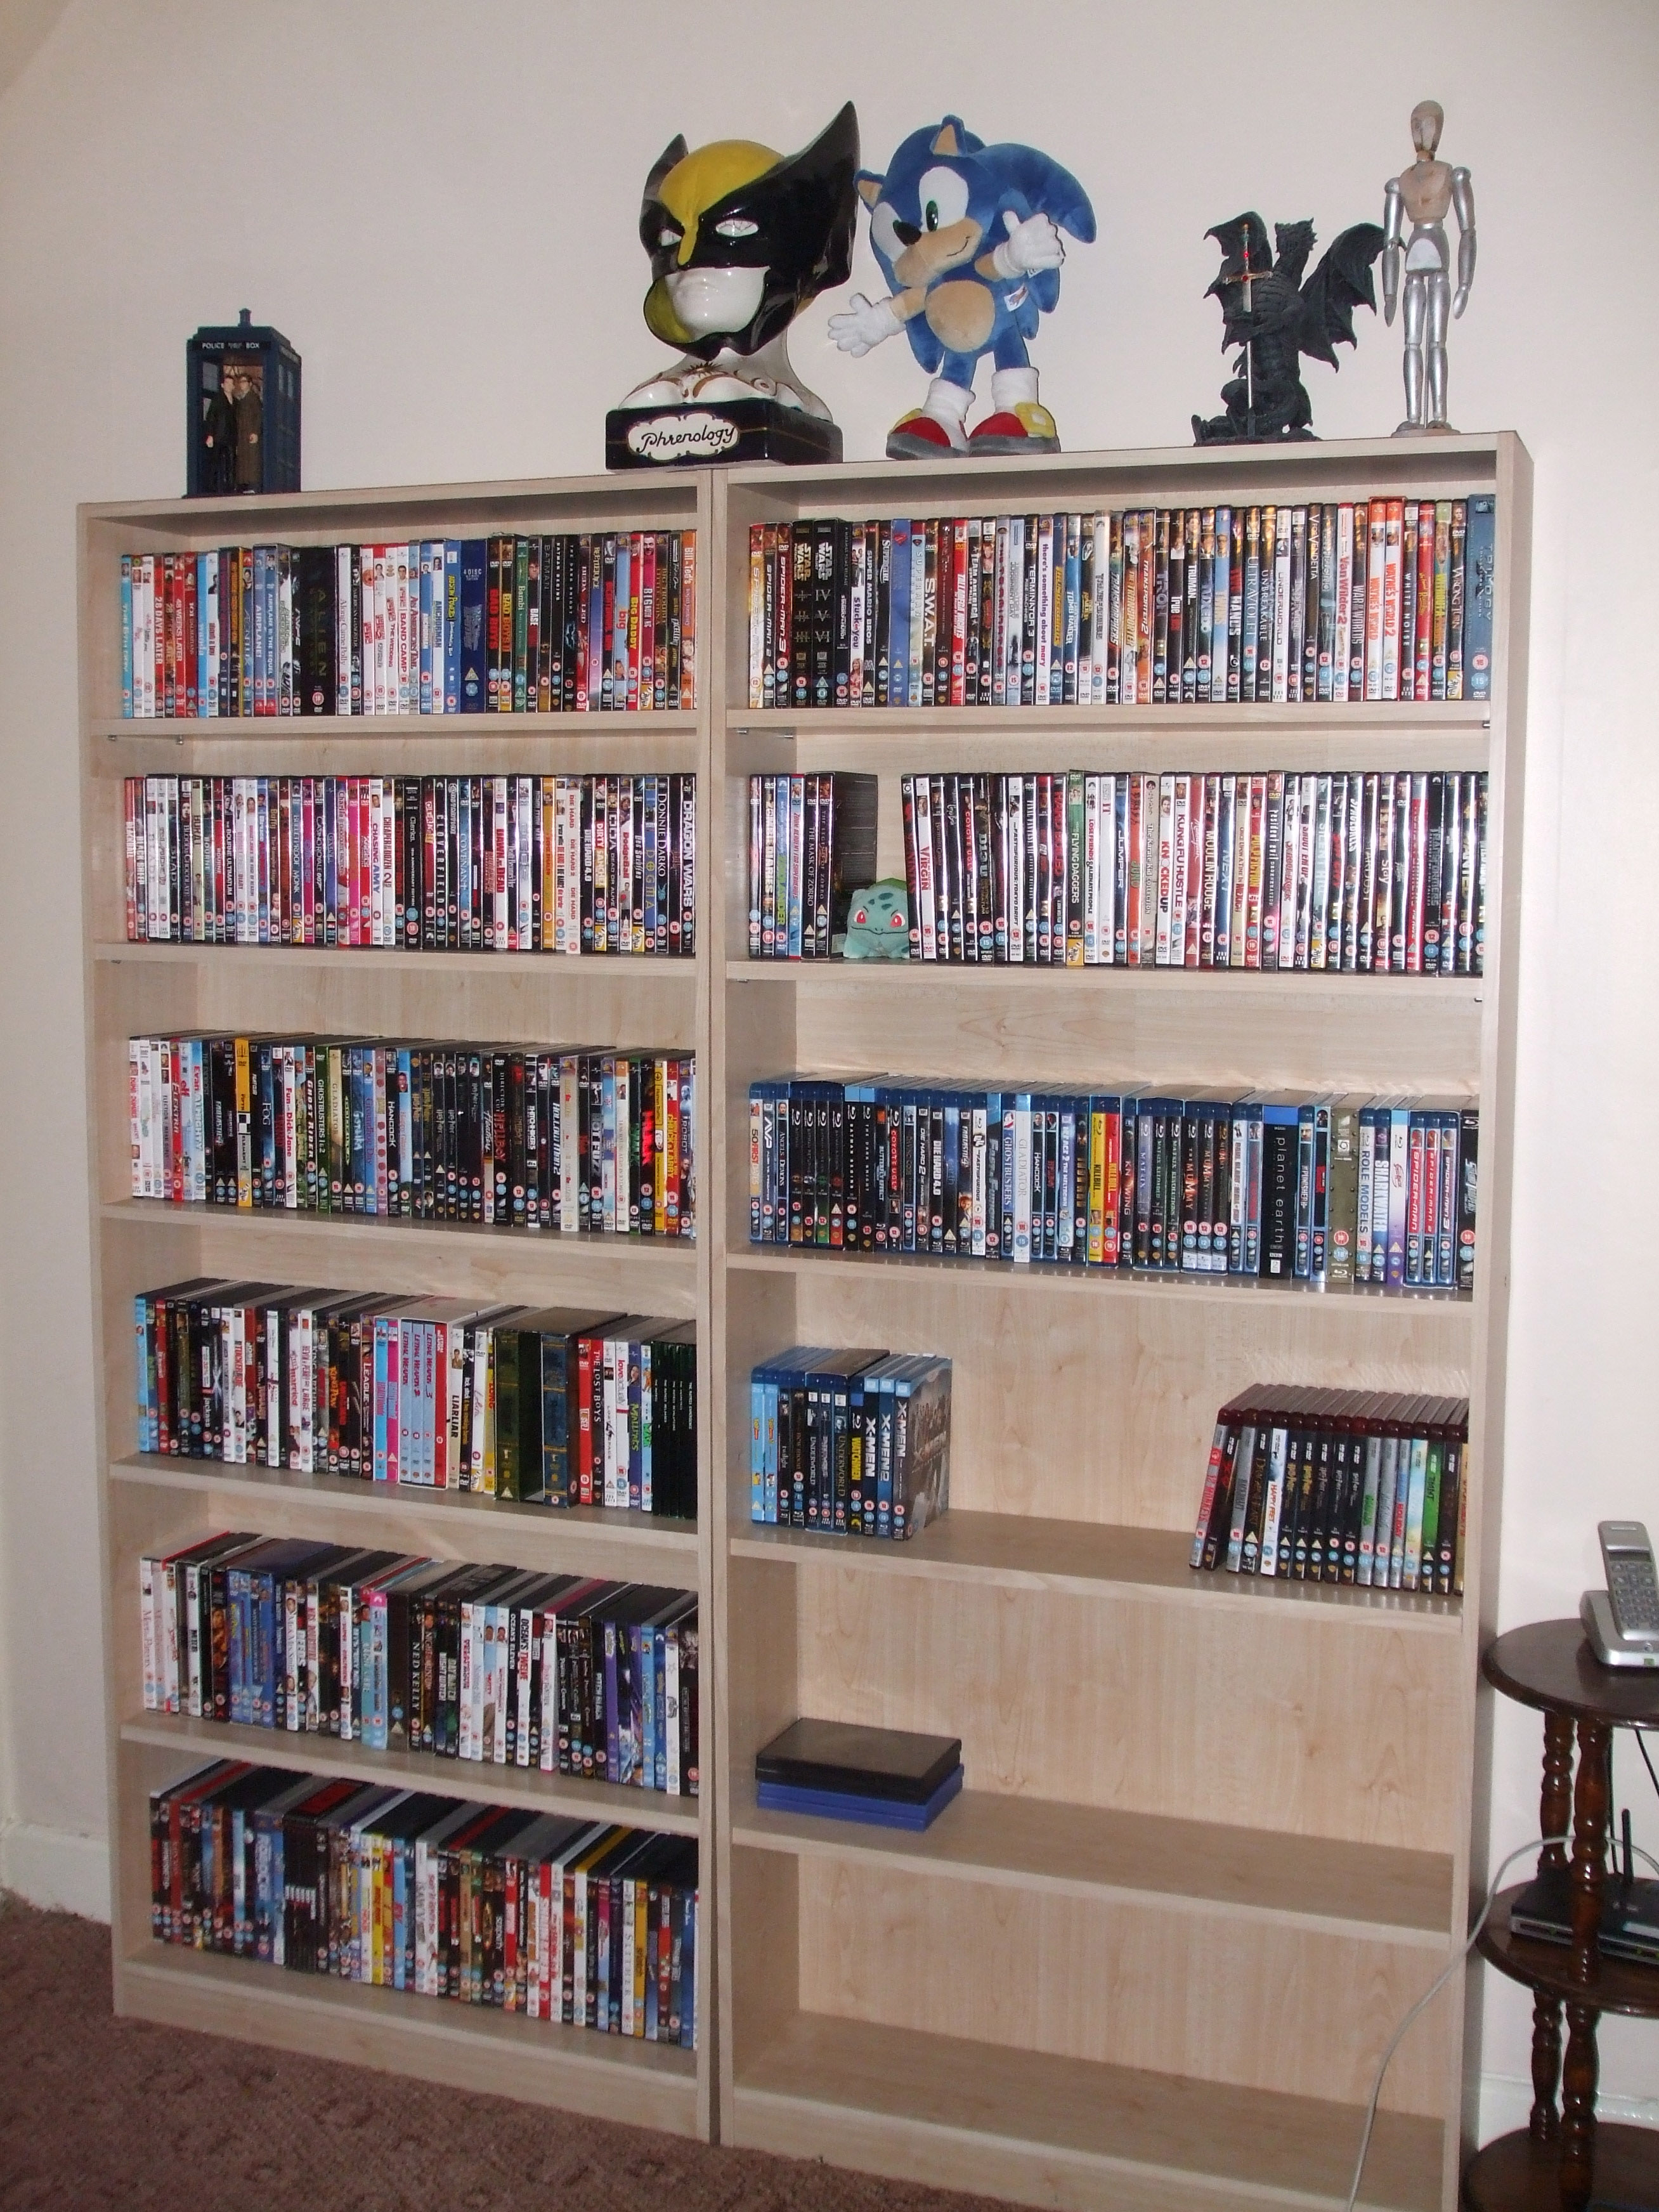 Actually Doesnt Look Much Because Of The Space Between Shelves But There Are Over 500 Films Here On DVD Blu Ray And HD